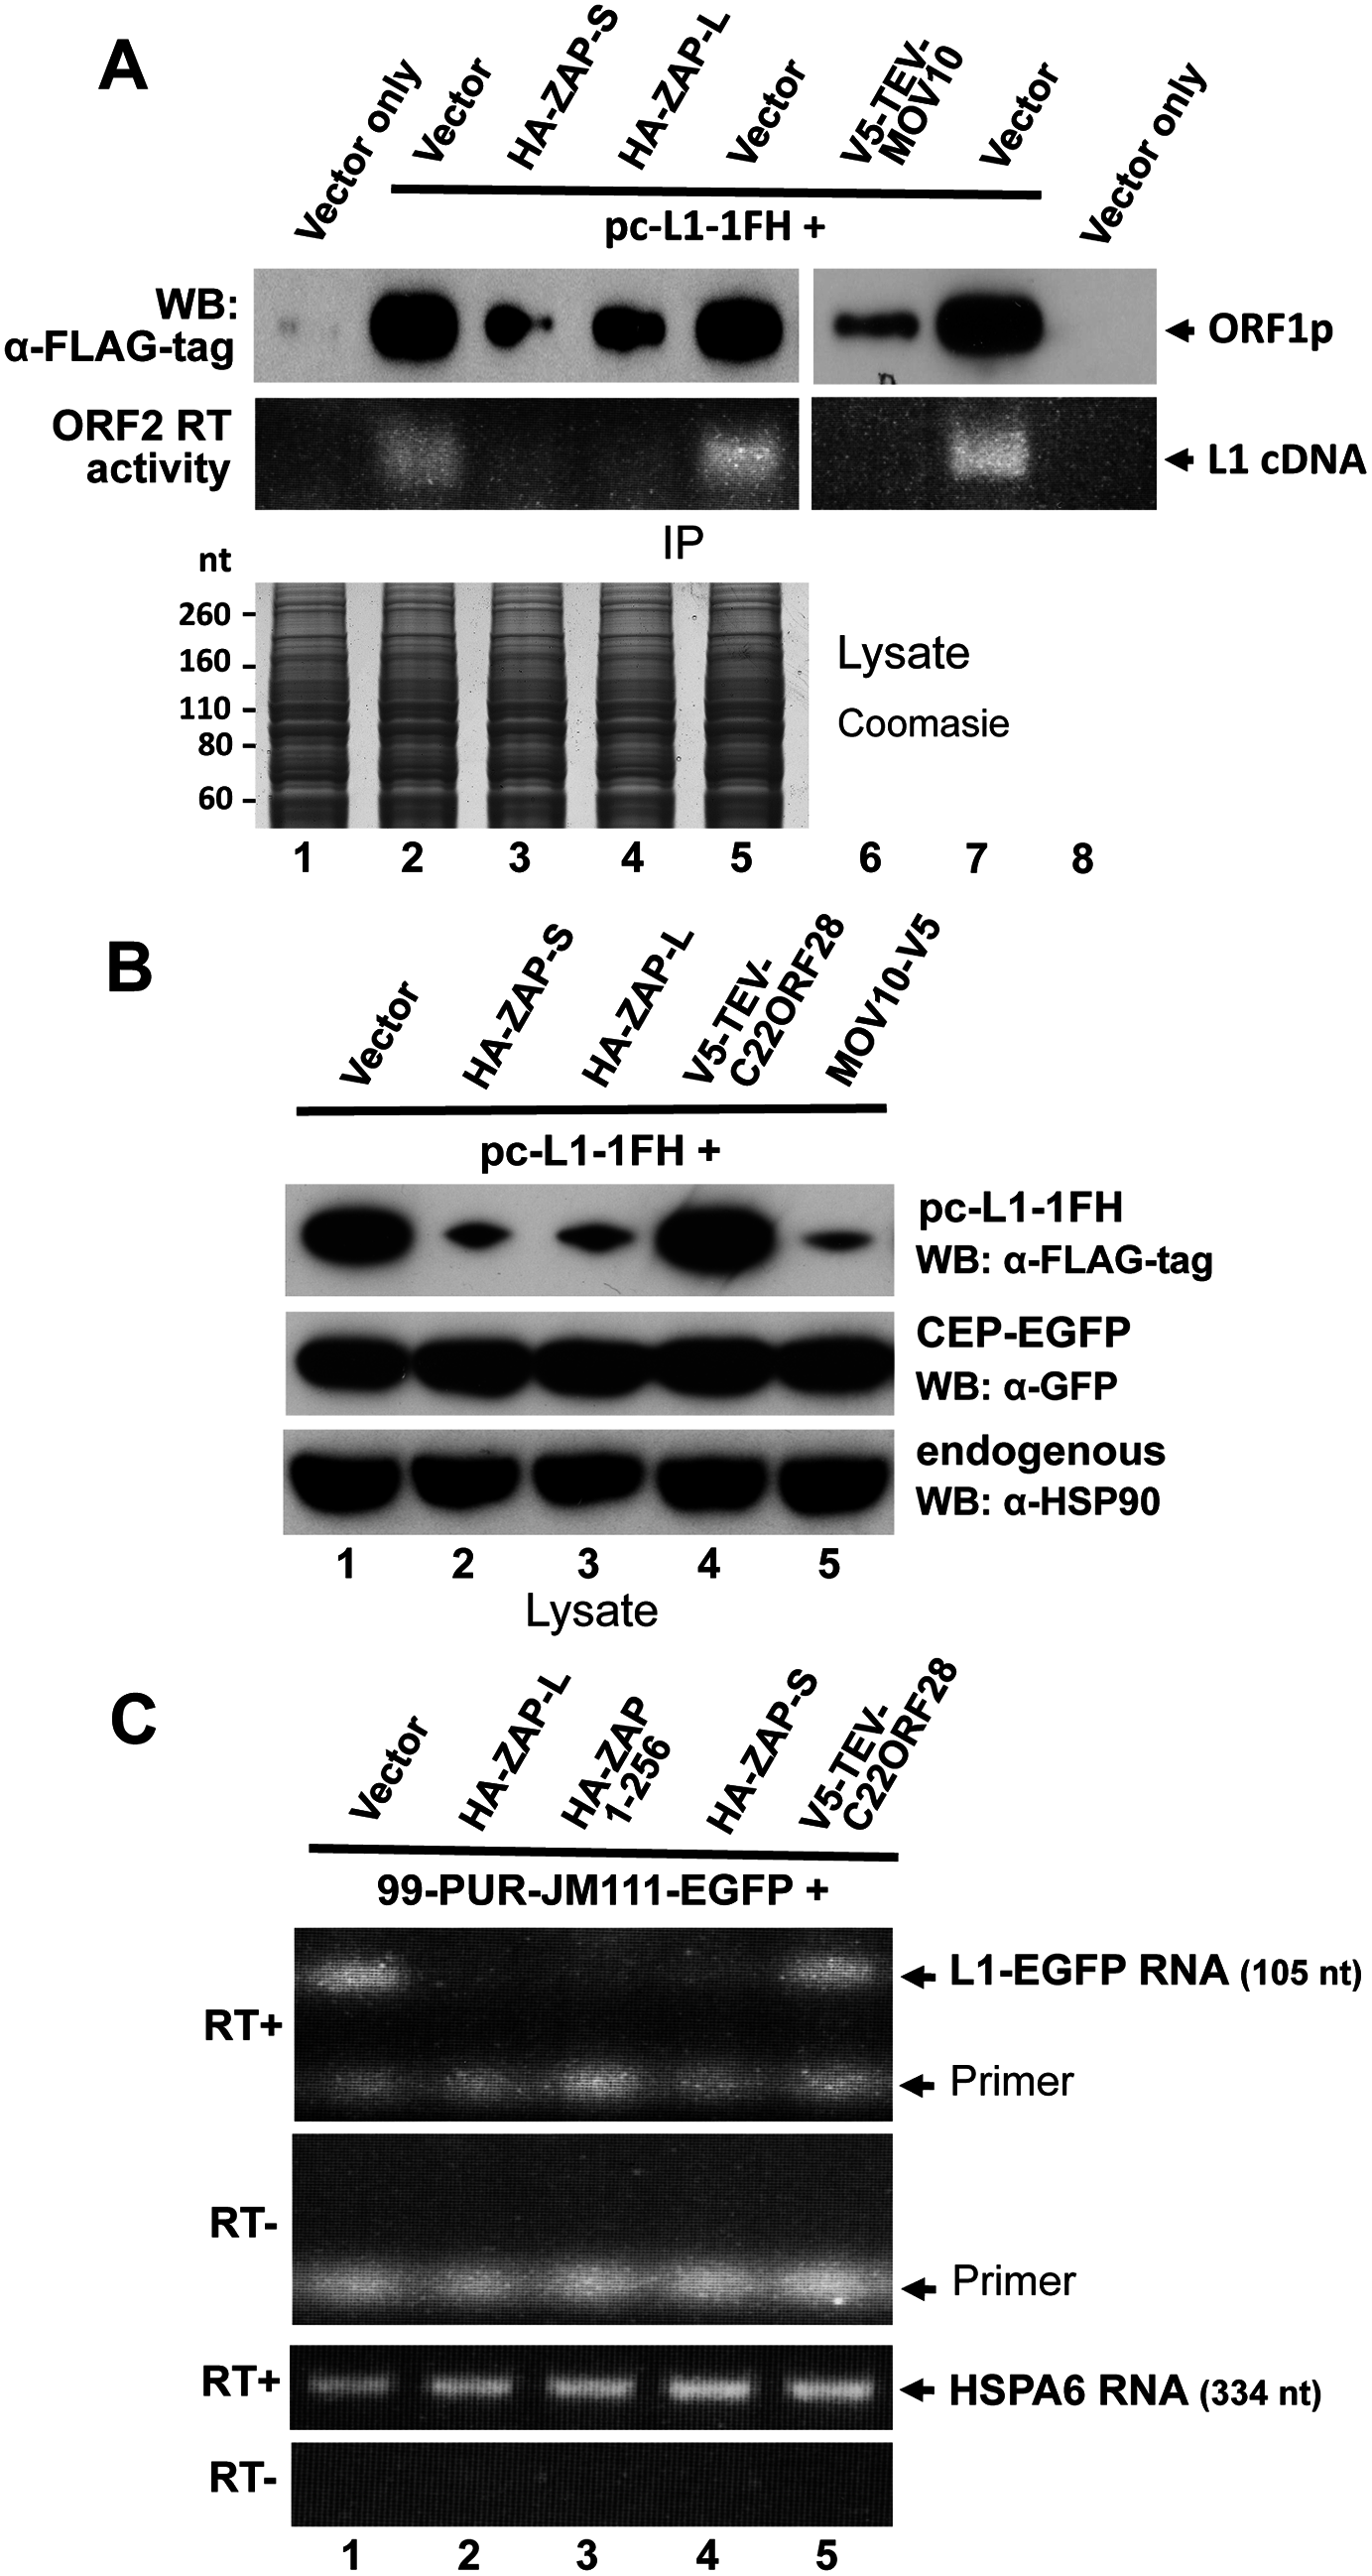 ZAP inhibits exogenous L1 RNP levels in cells.